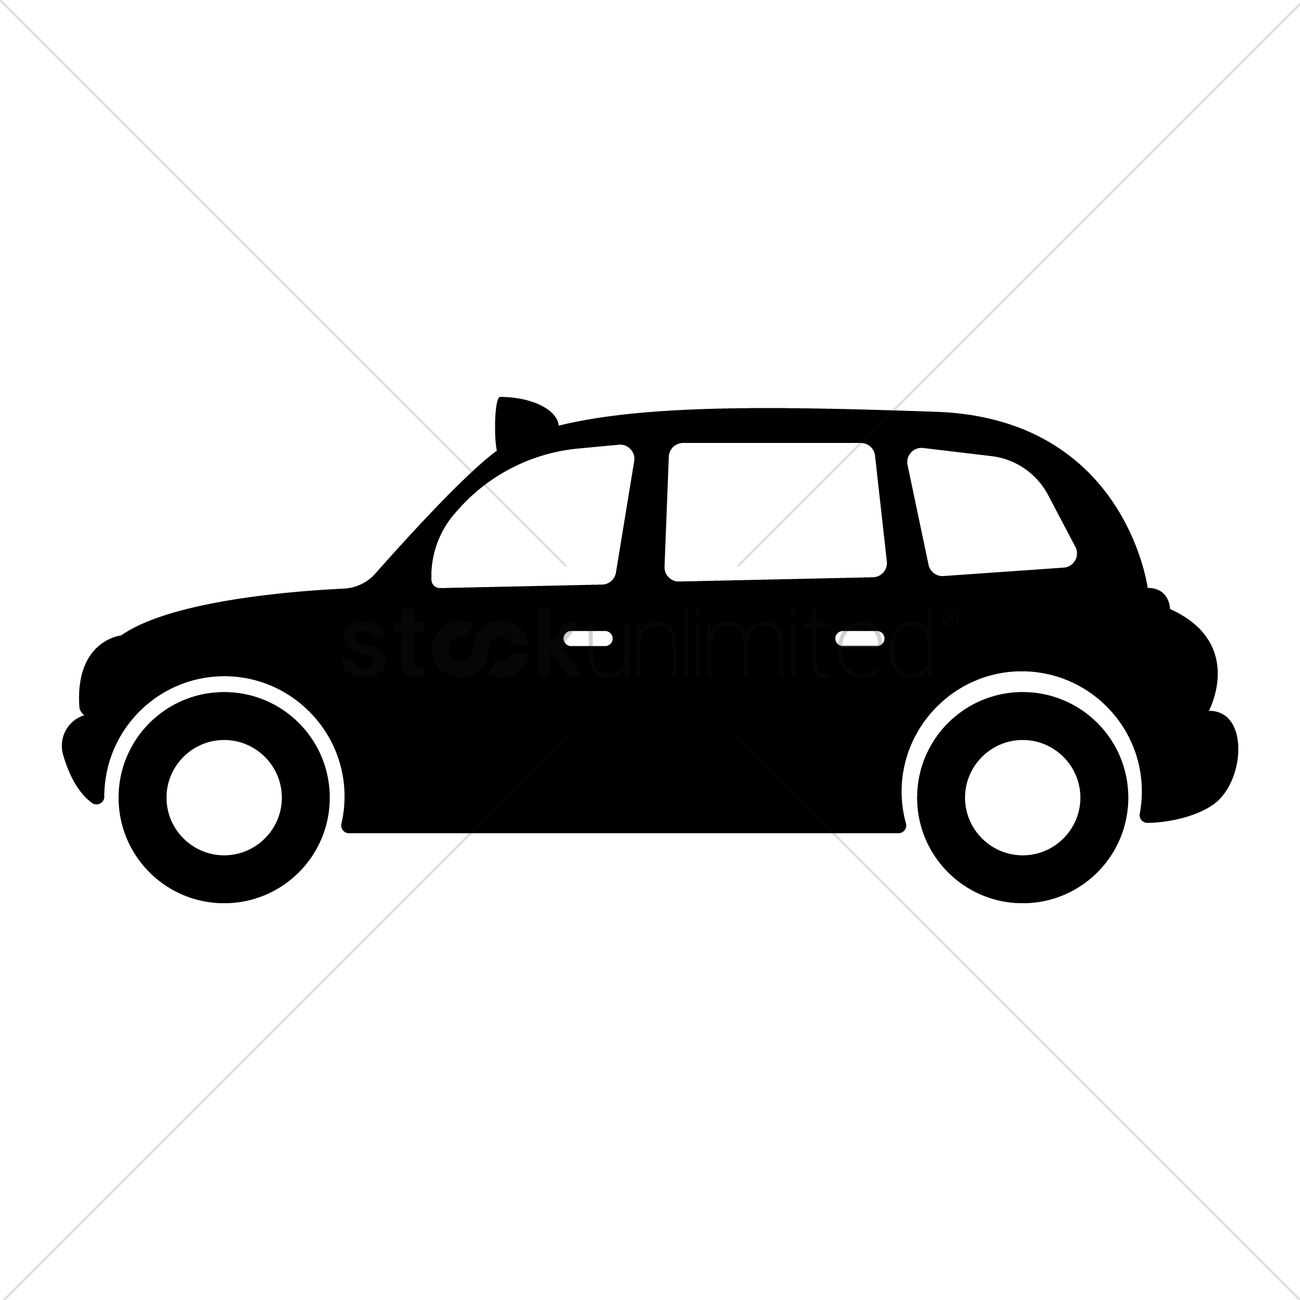 Black taxi Vector Image - 1573985 | StockUnlimited